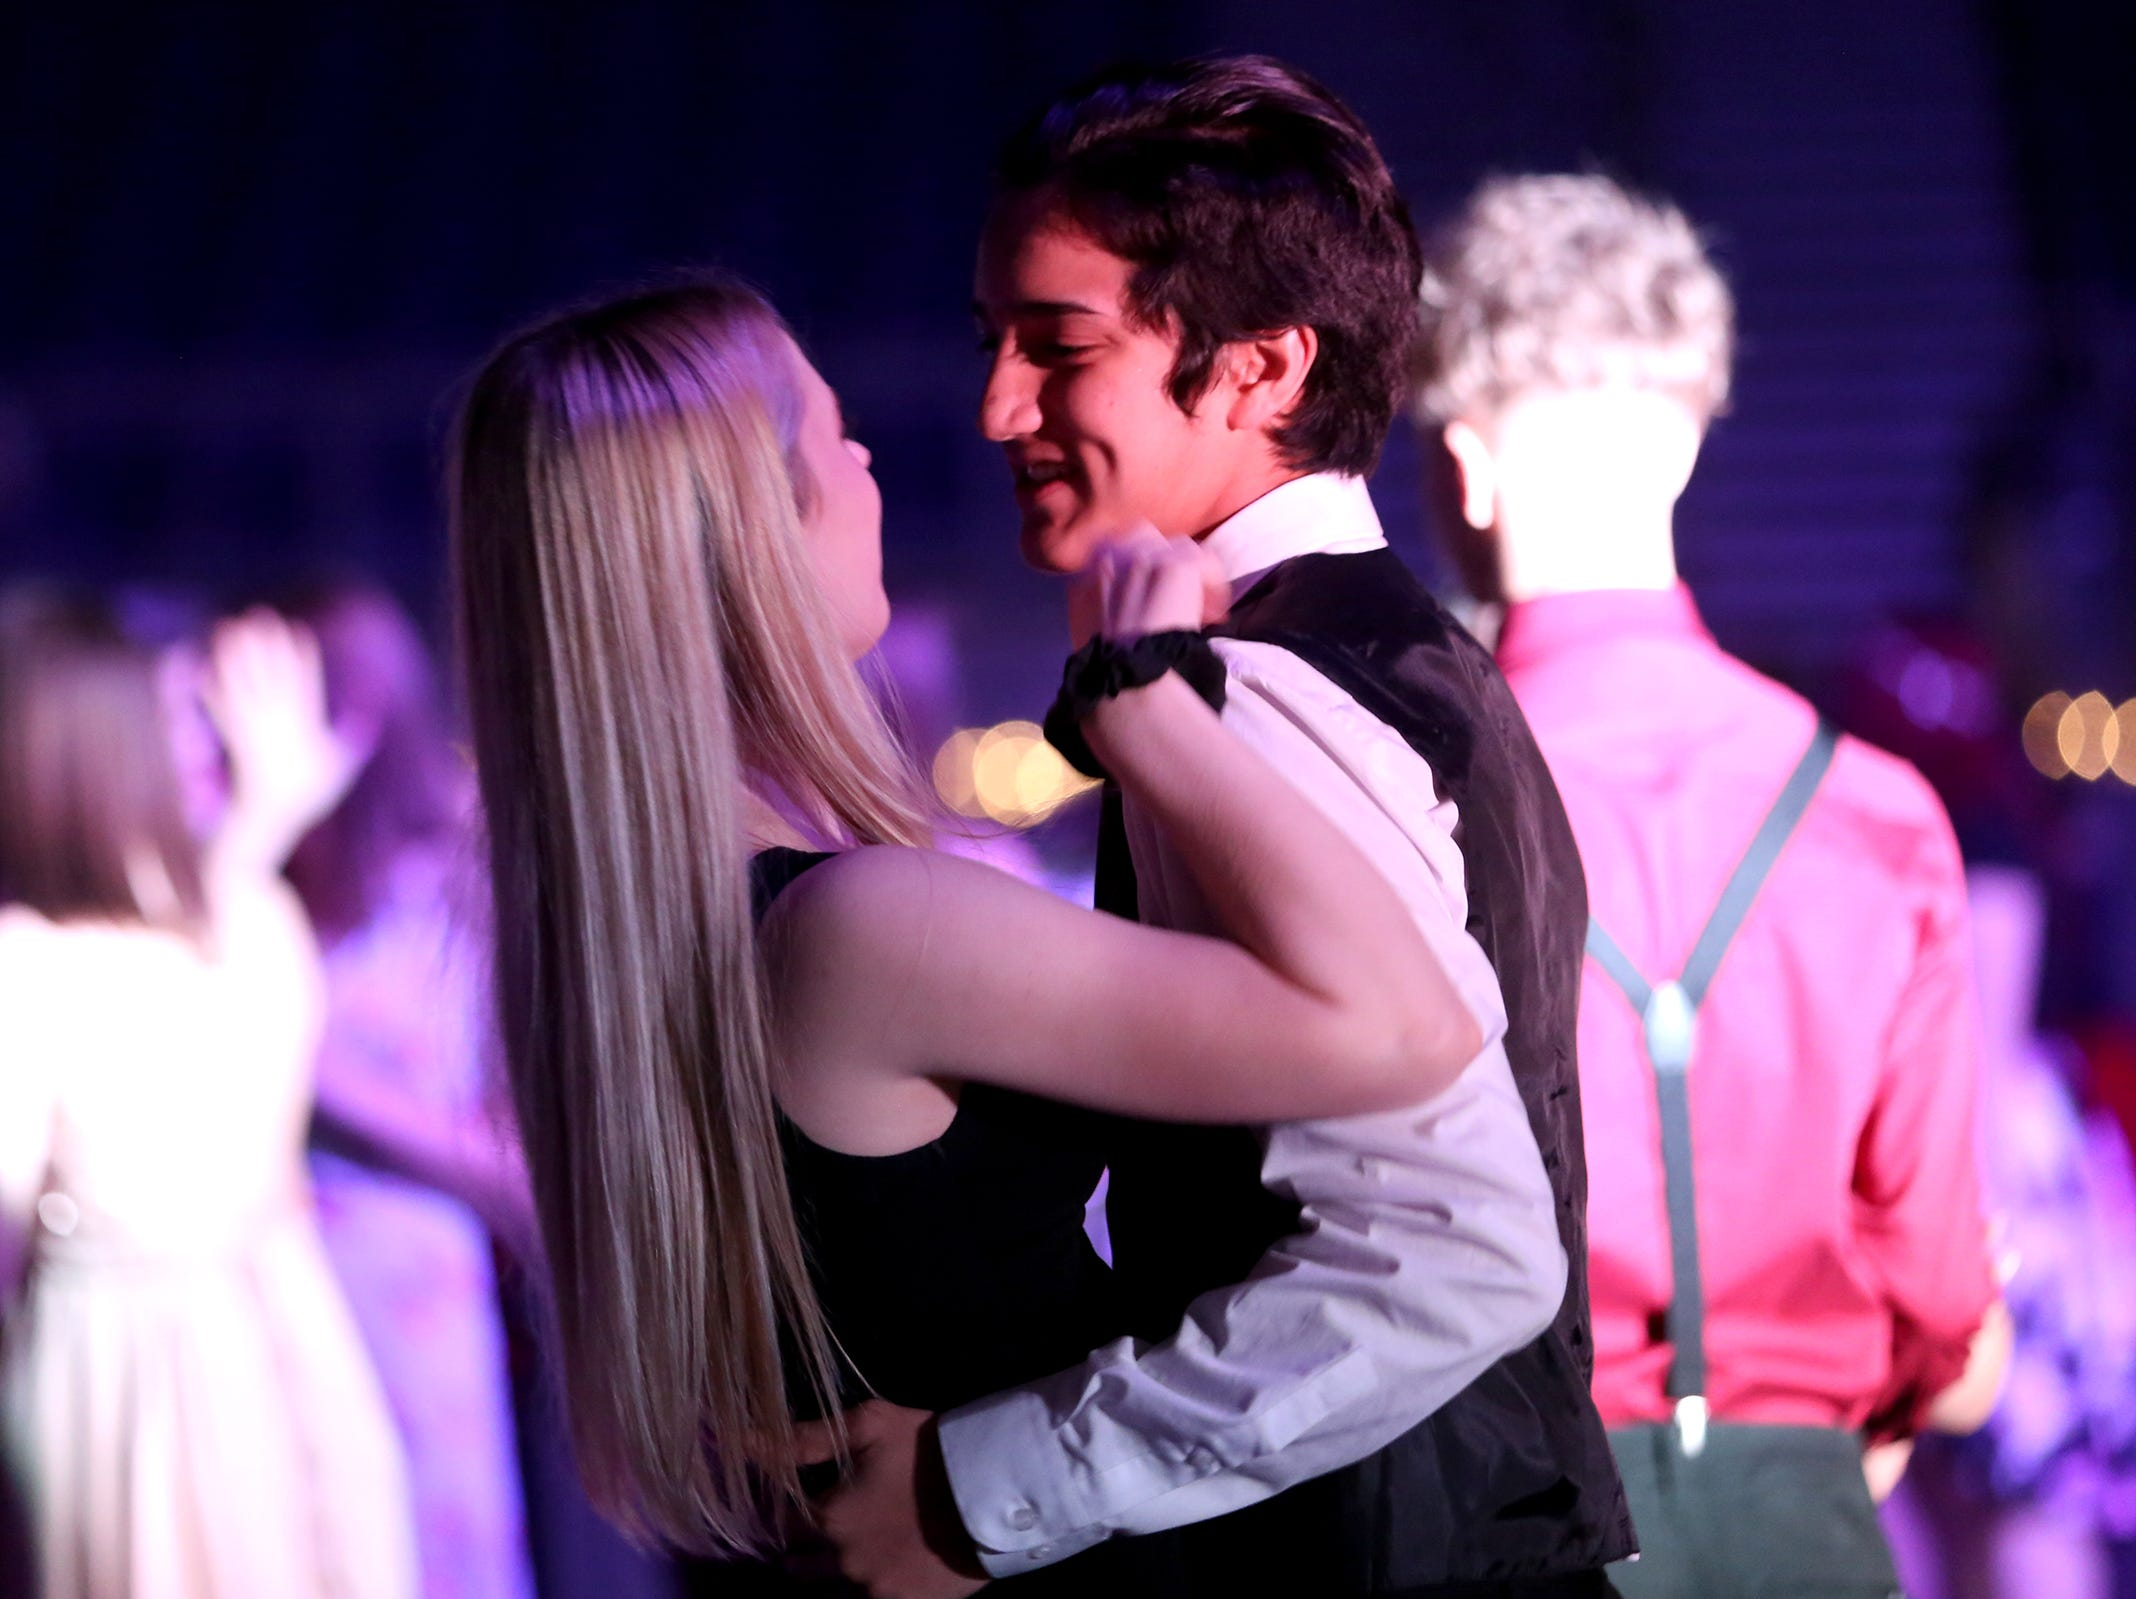 """Students from local high schools dance during the annual SnoBall at the Oregon State Fairgrounds Pavilion in Salem on Saturday, Dec. 1, 2018. This year's theme was """"Old Hollywood Glam."""""""